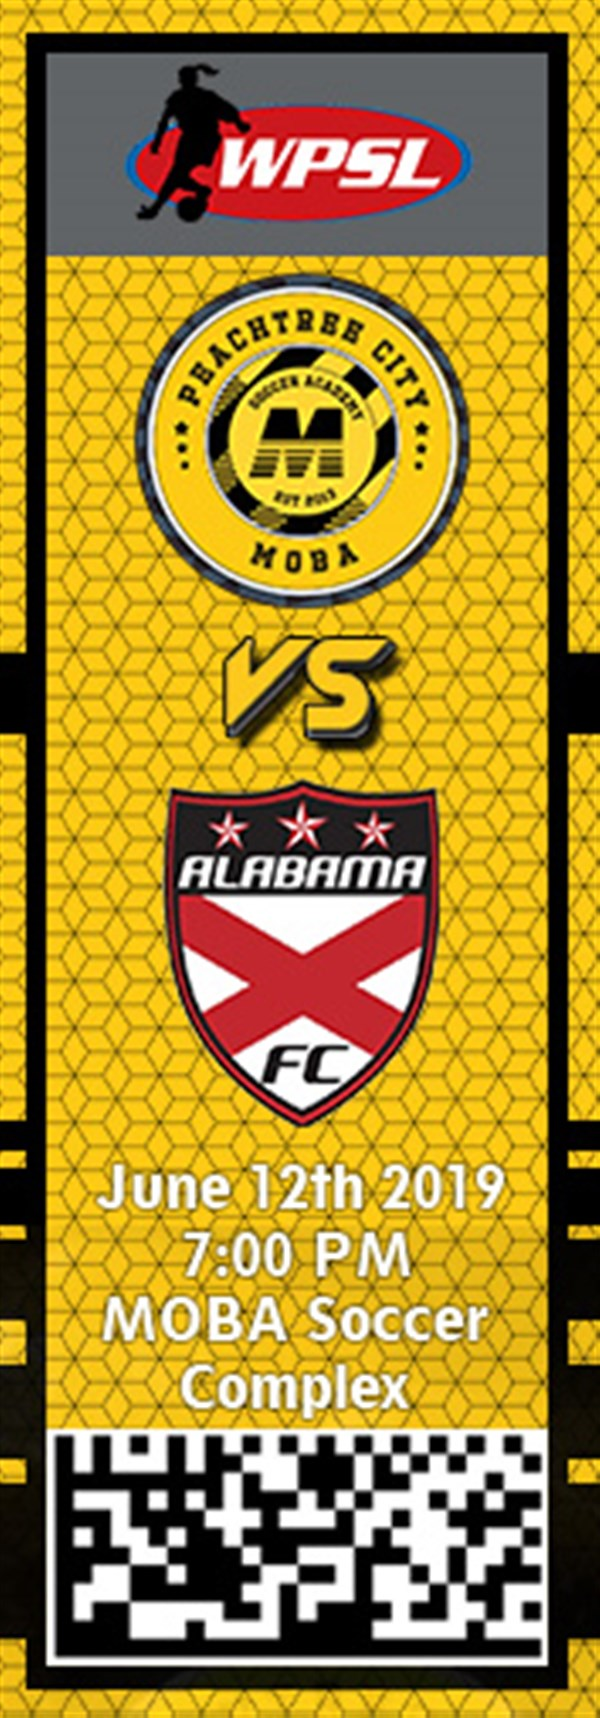 Get Information and buy tickets to PTC MOBA vs. Alabama FC WPSL on MOBA Soccer Academy